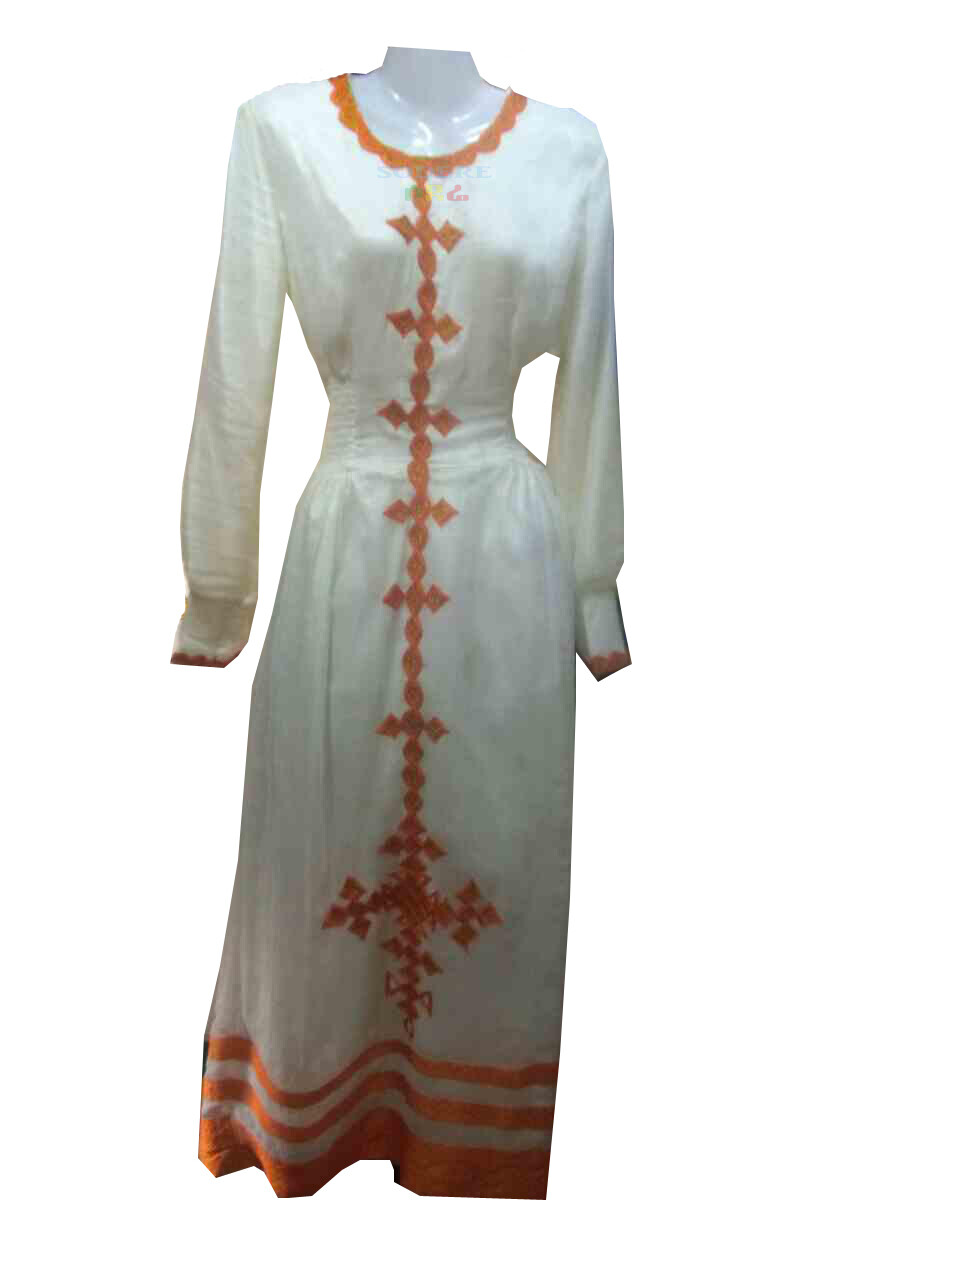 ረዘም ያለ የሀበሻ ቀሚስ / Ethiopian Traditional Long Dress